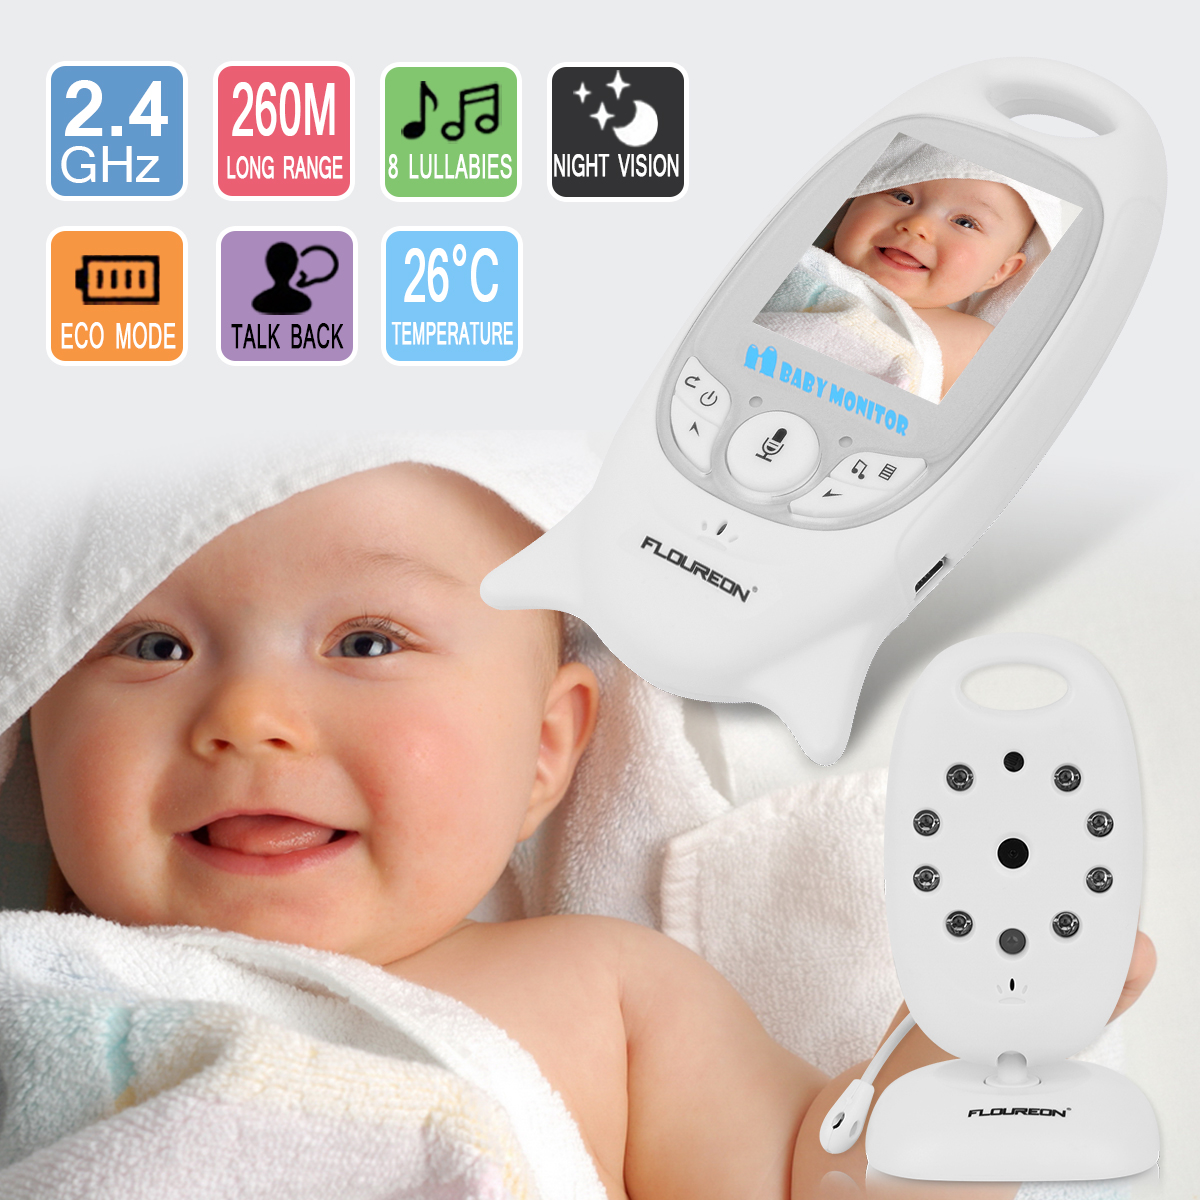 Baby Monitor, Video Baby Monitor with Camera- Wireless Video Monitor for Baby Safety- with Infrared Night Vision/Two Way Talkback/Temperature Monitor/Lullaby-play